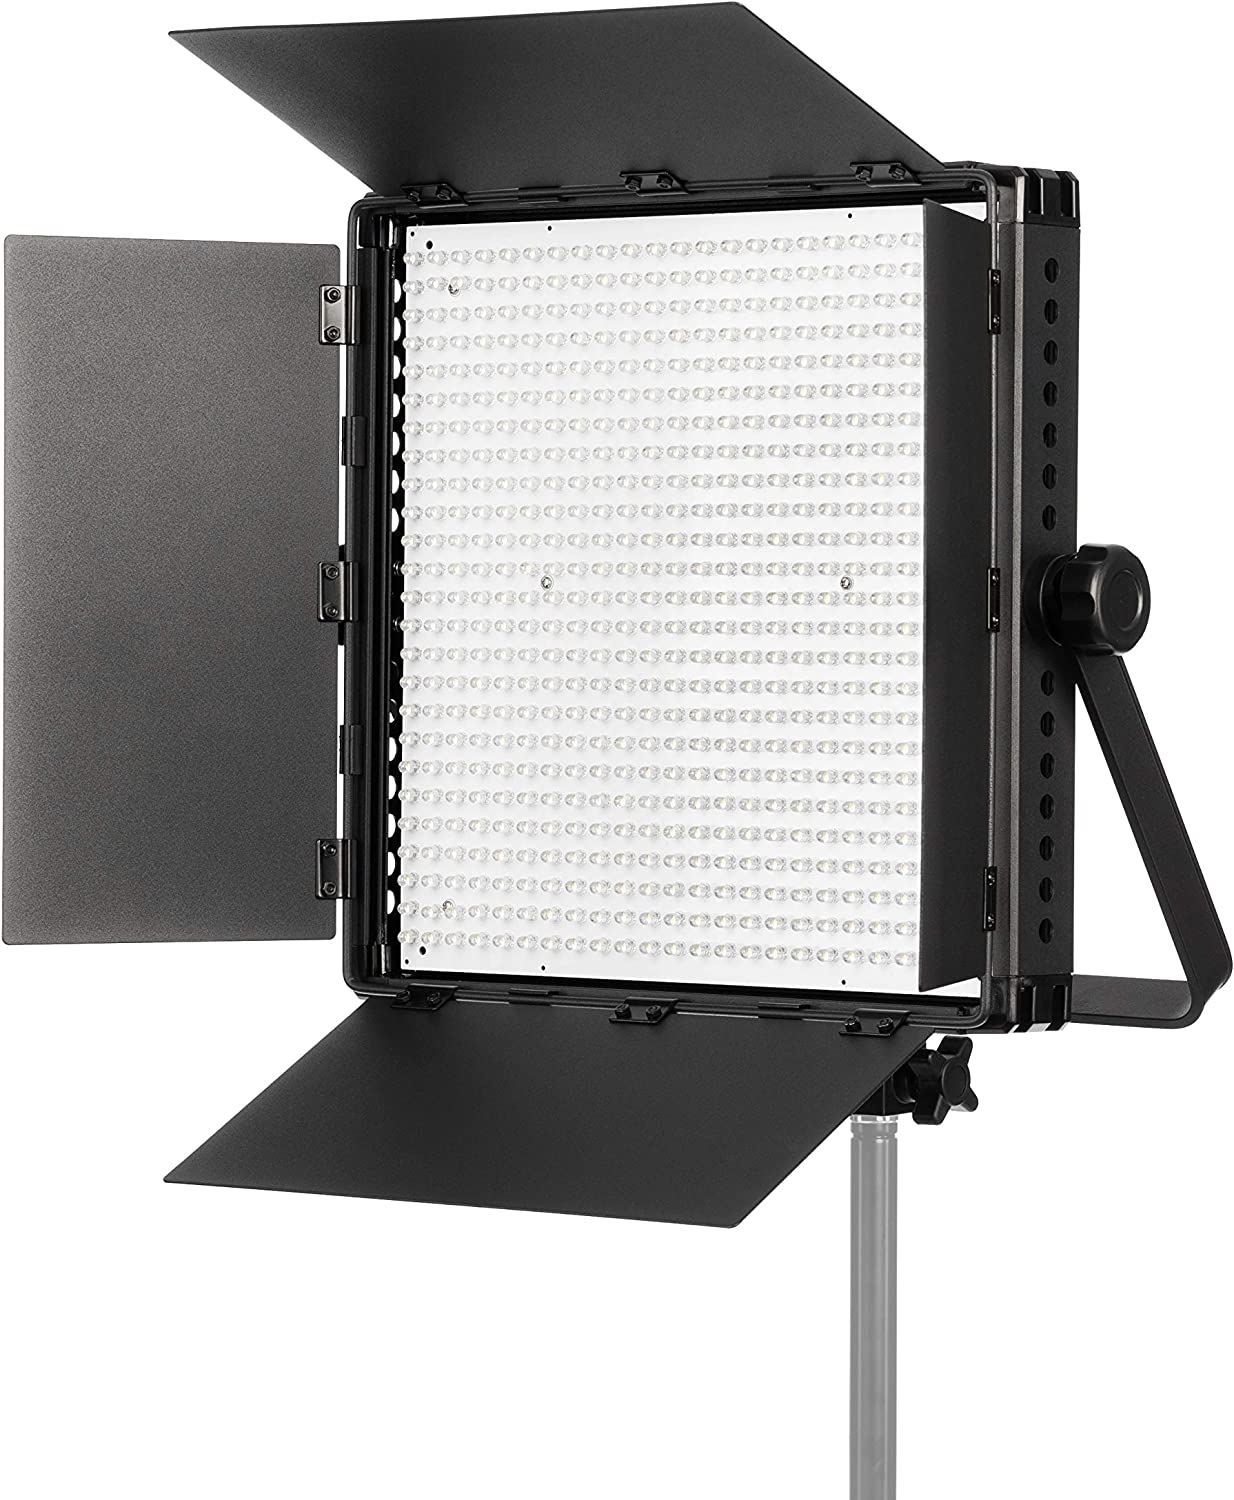 Fovitec - Portable 600 LED Bi-Color Panel for Video and Photo with Barndoors, DMX, V-Lock Mount, and Case